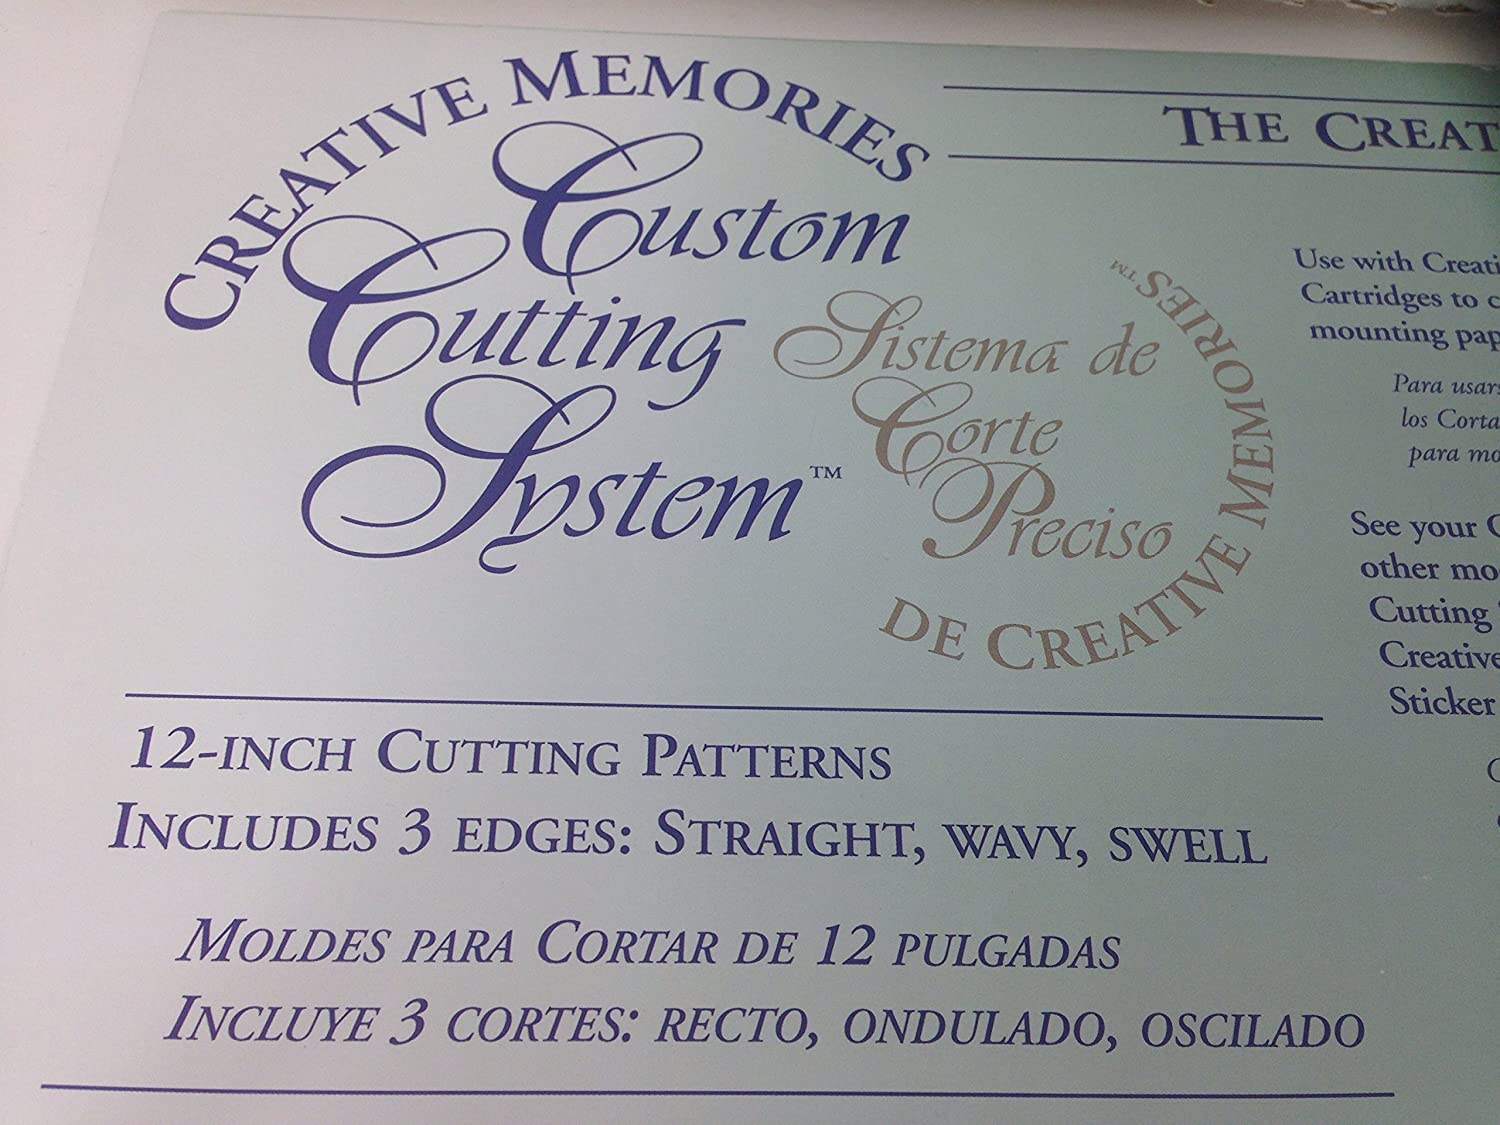 Amazon.com : Creative Memories Custum Cutting System 12